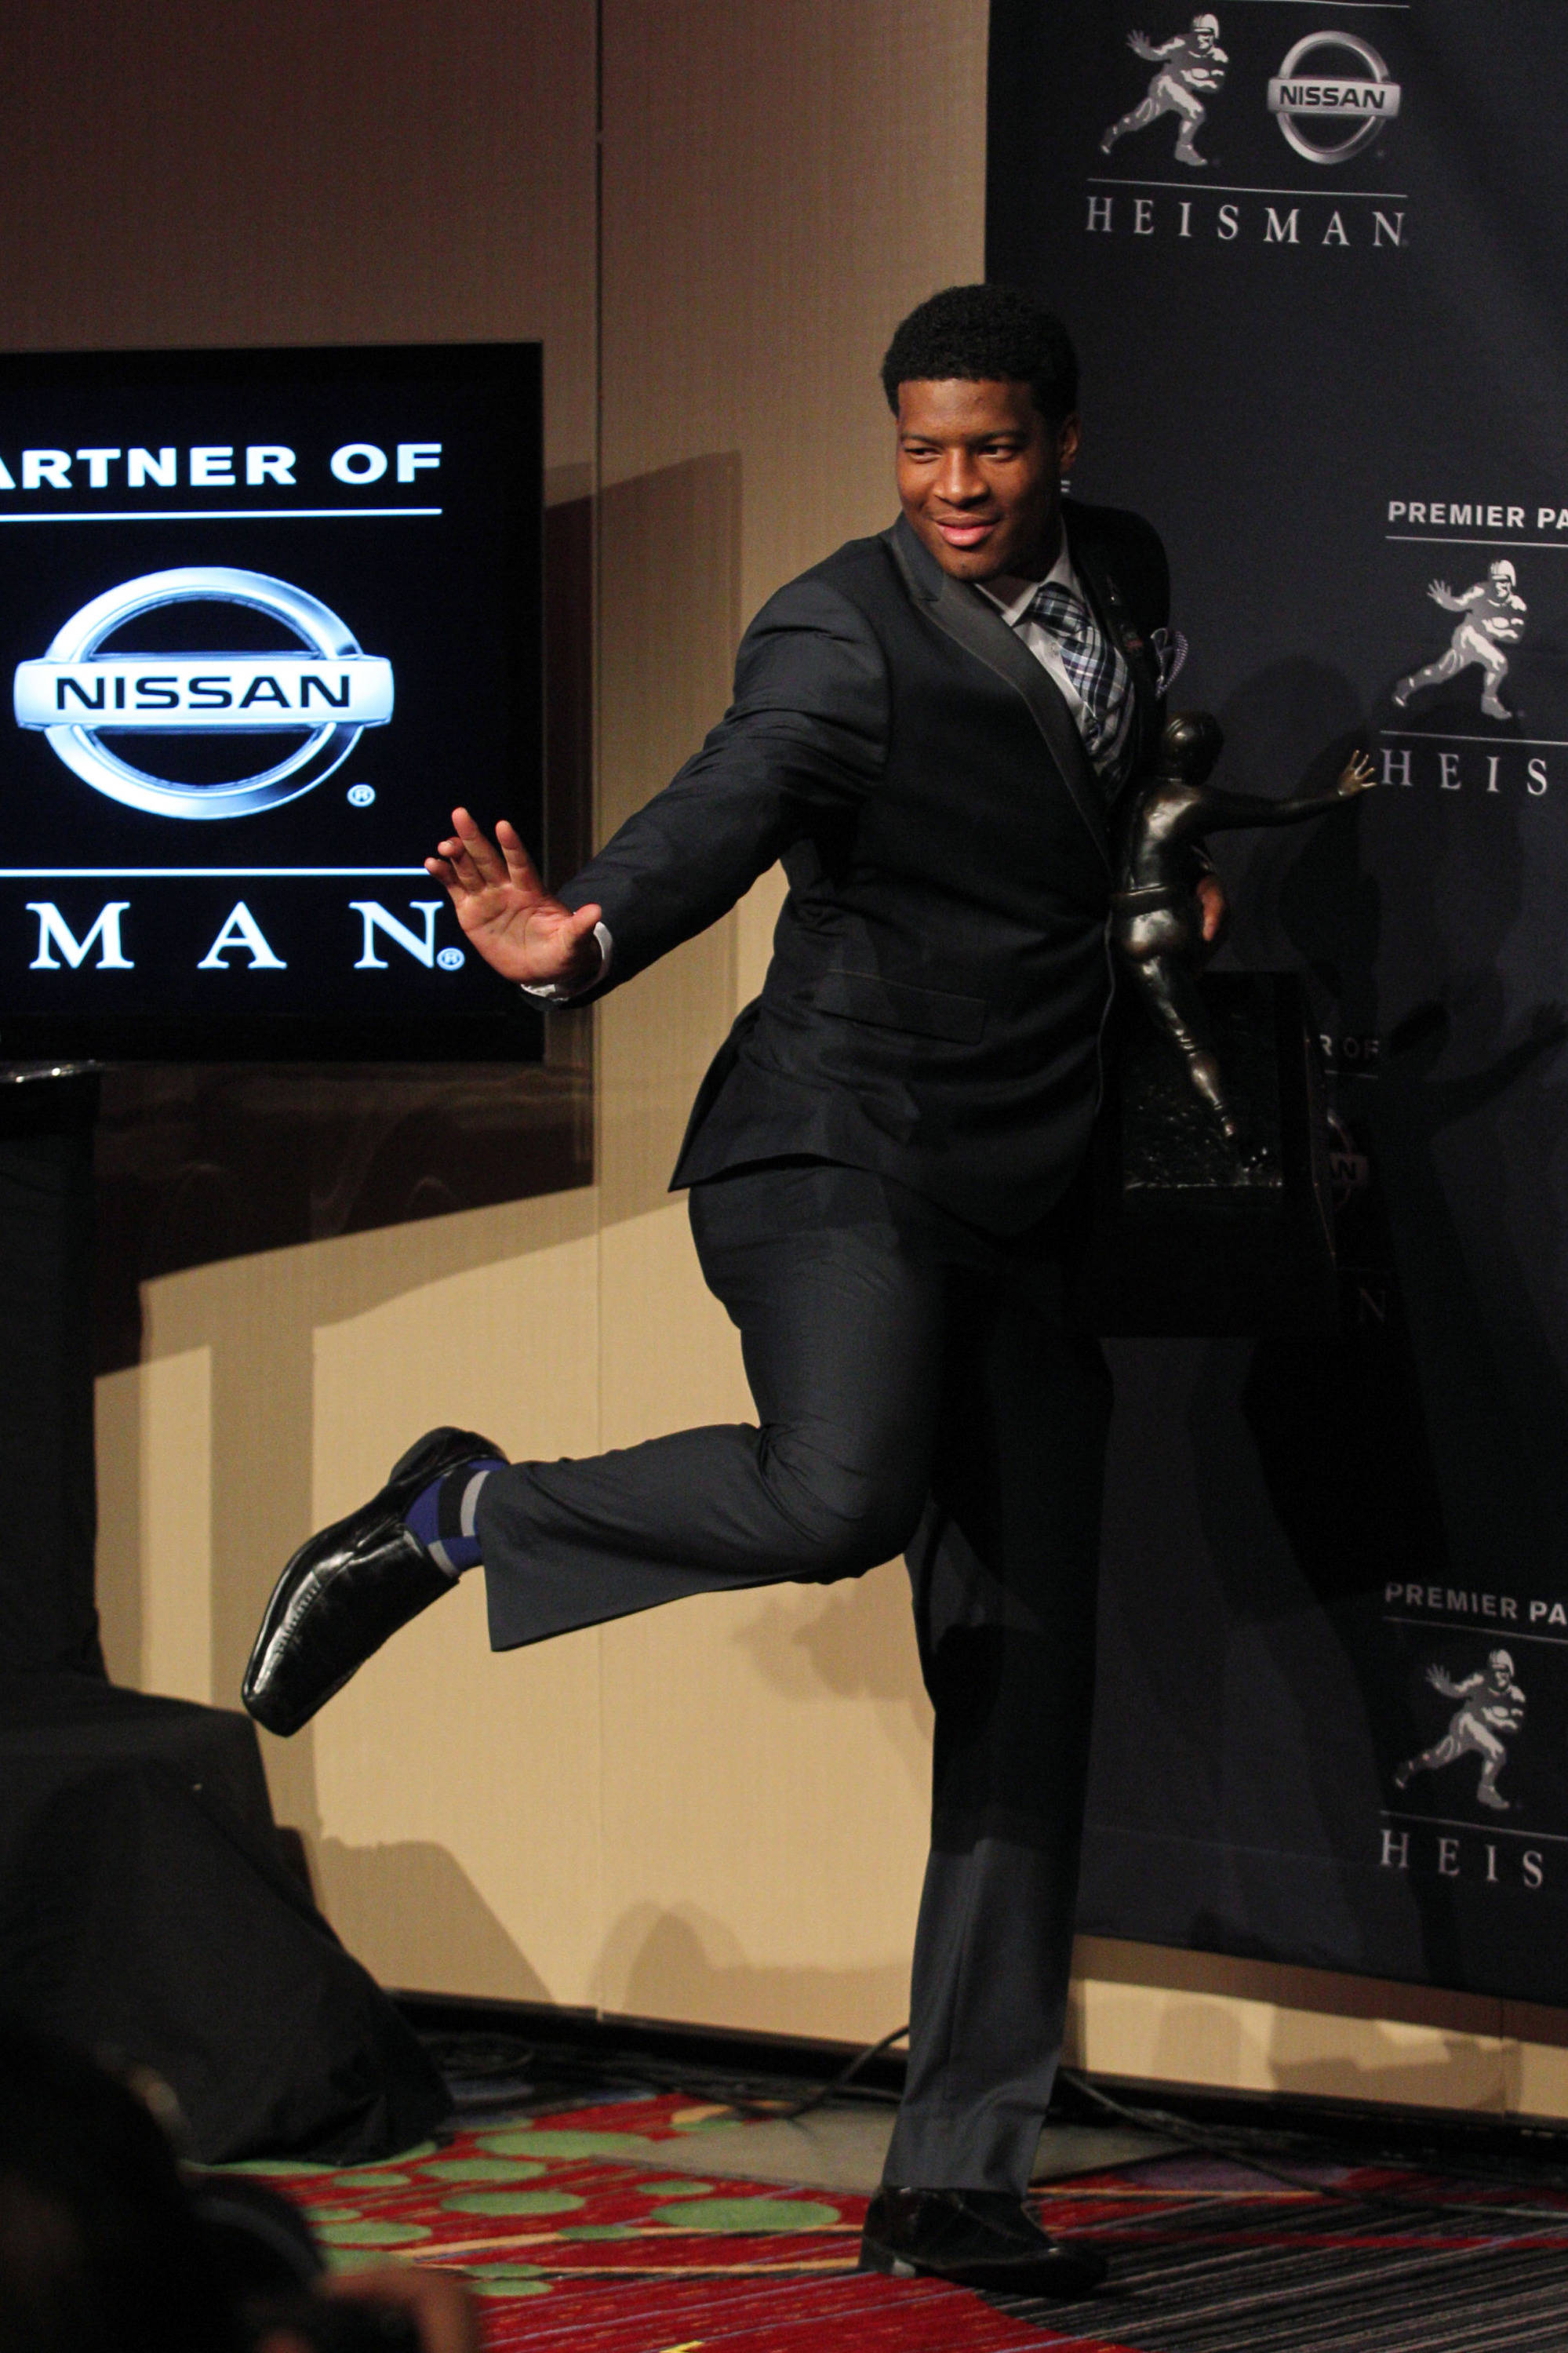 Dec 14, 2013; New York, NY, USA; Seminoles quarterback and 2013 Heisman Trophy winner Jameis Winston strikes a Heisman pose while holding the trophy during a press conference. Brad Penner-USA TODAY Sports